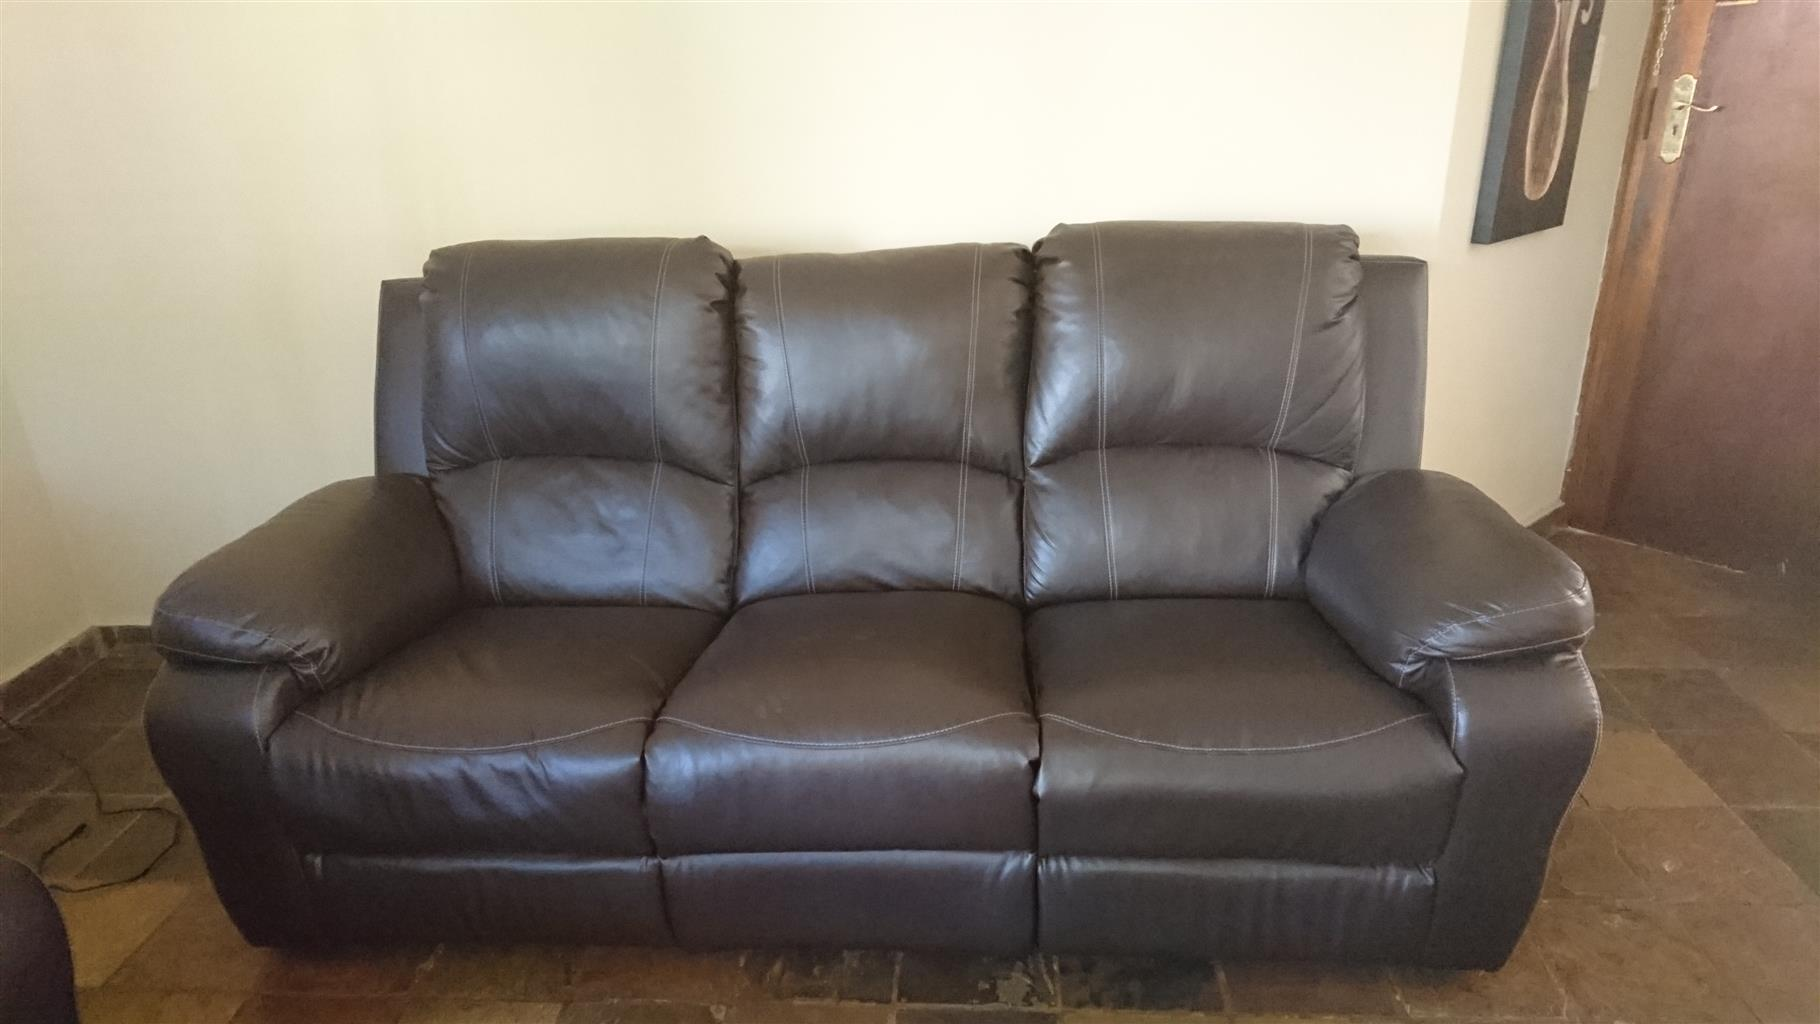 3 Seater Leather recliner couch for sale